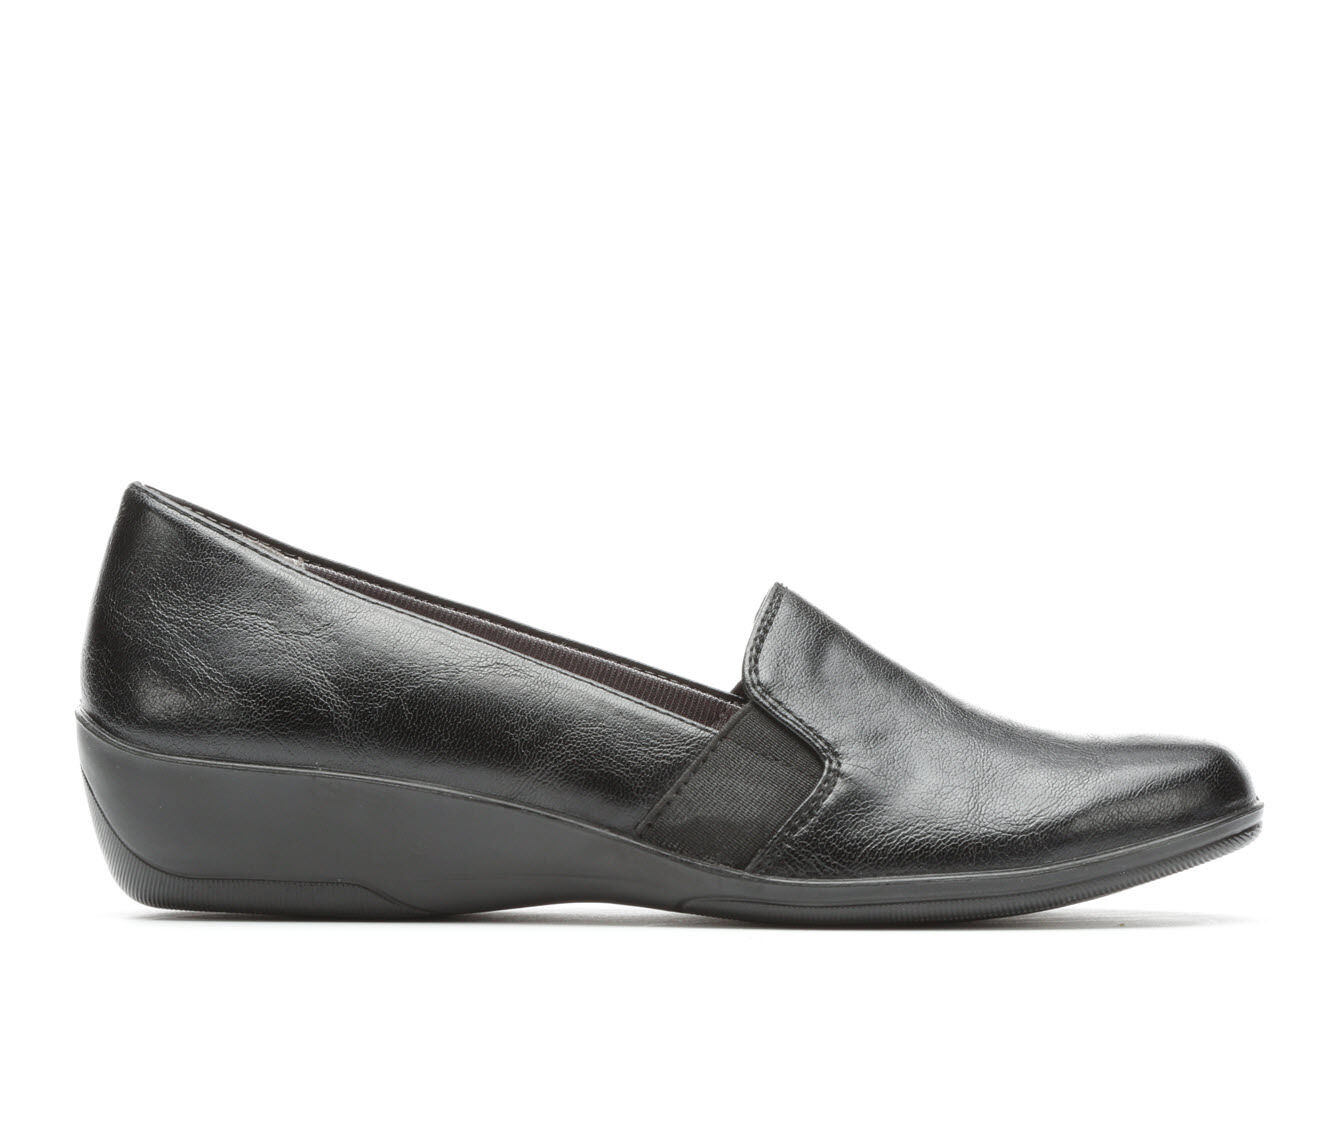 choose authentic Women's LifeStride Isabelle Loafers Black